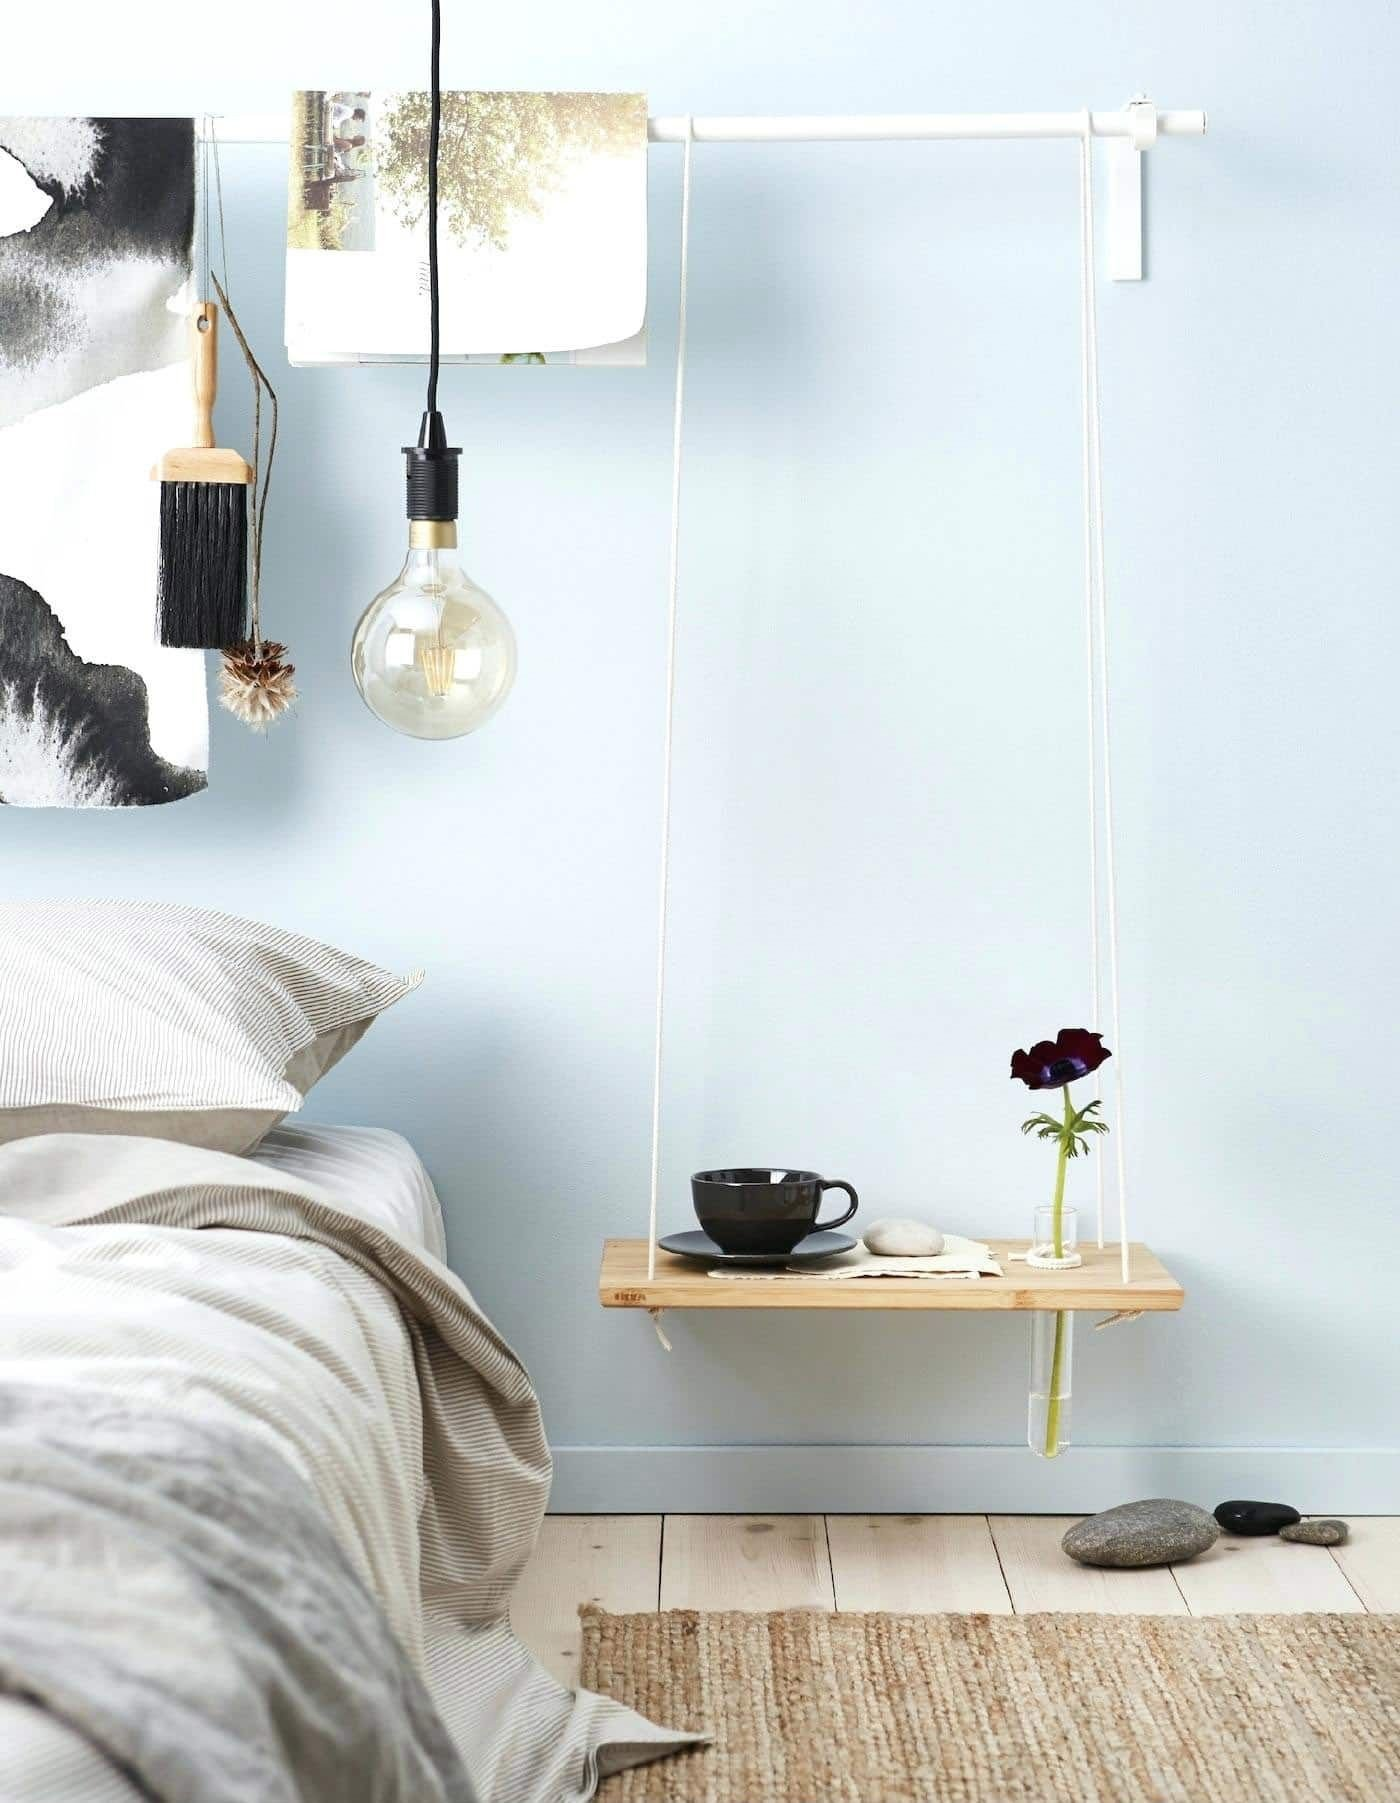 Space Saving Bedroom Ideas New Genius Space Saving Projects for Small Spots & Tight Corners